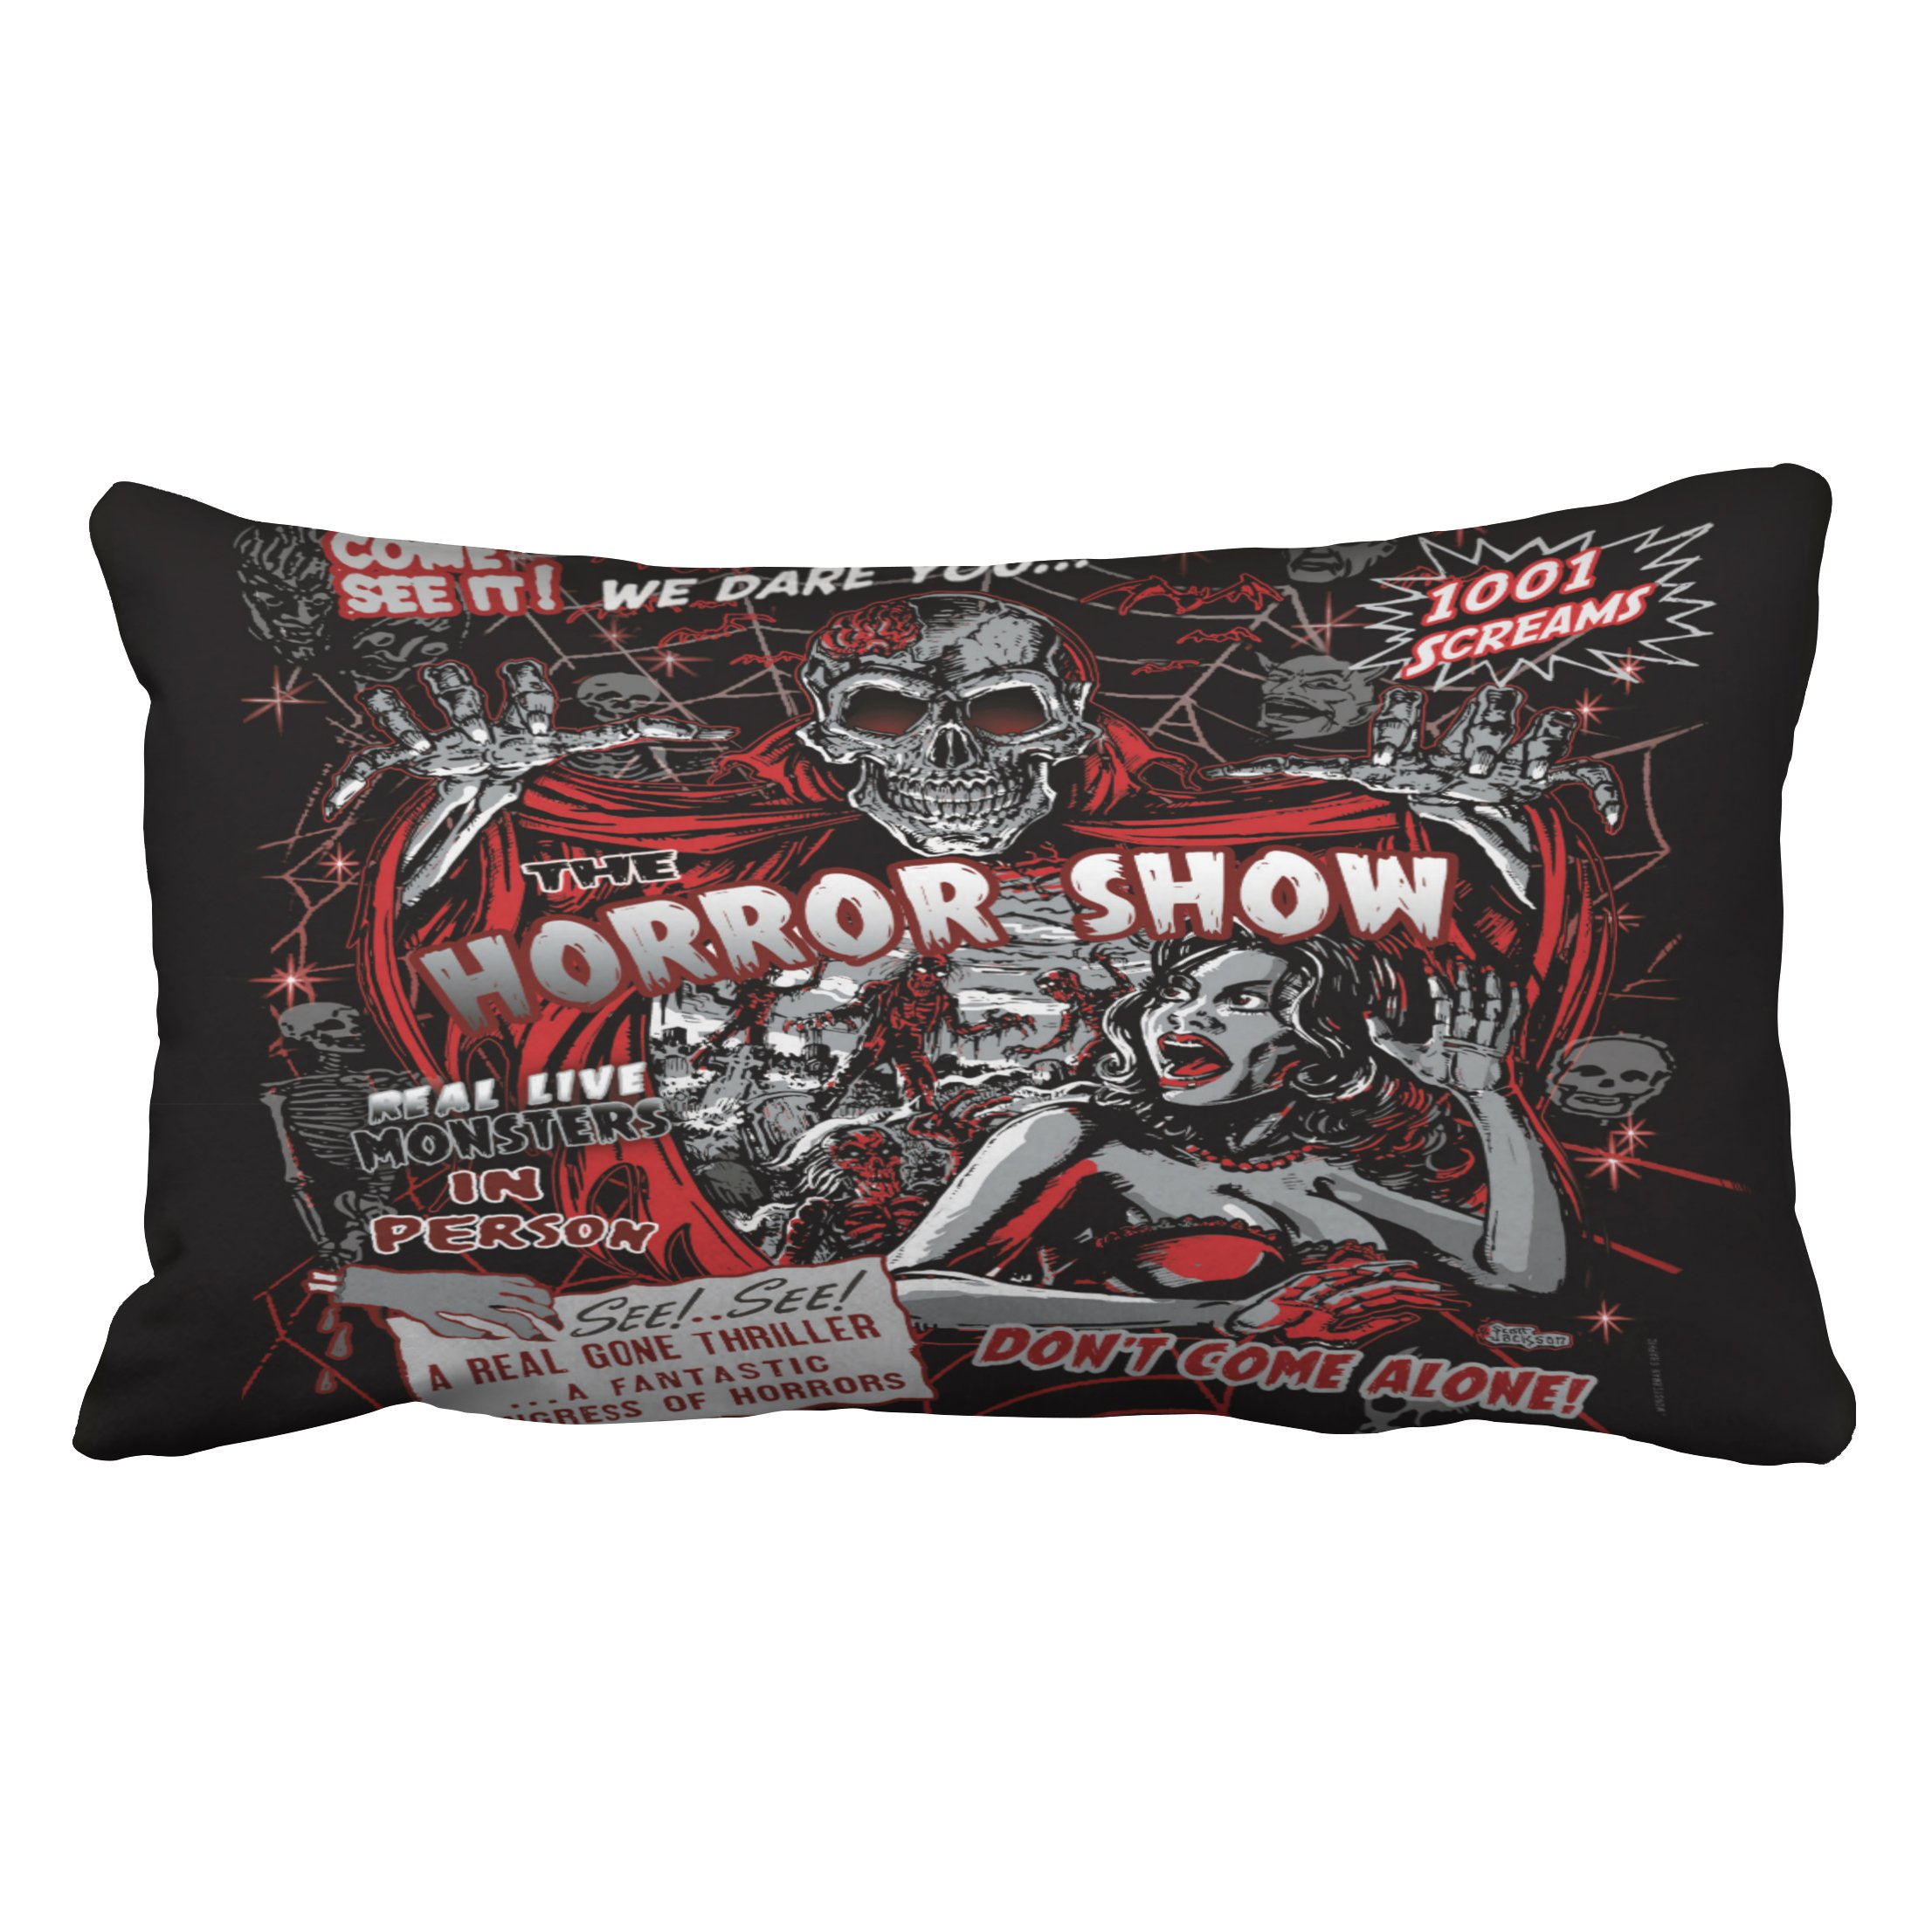 Emvency Decorative Throw Pillow Cover King Size 20x36 Inches Horror Movie Monster Spookhow Pillowcase With Hidden Zipper Decor Fashion Cushion Gift For Home Sofa Bedroom Couch Car